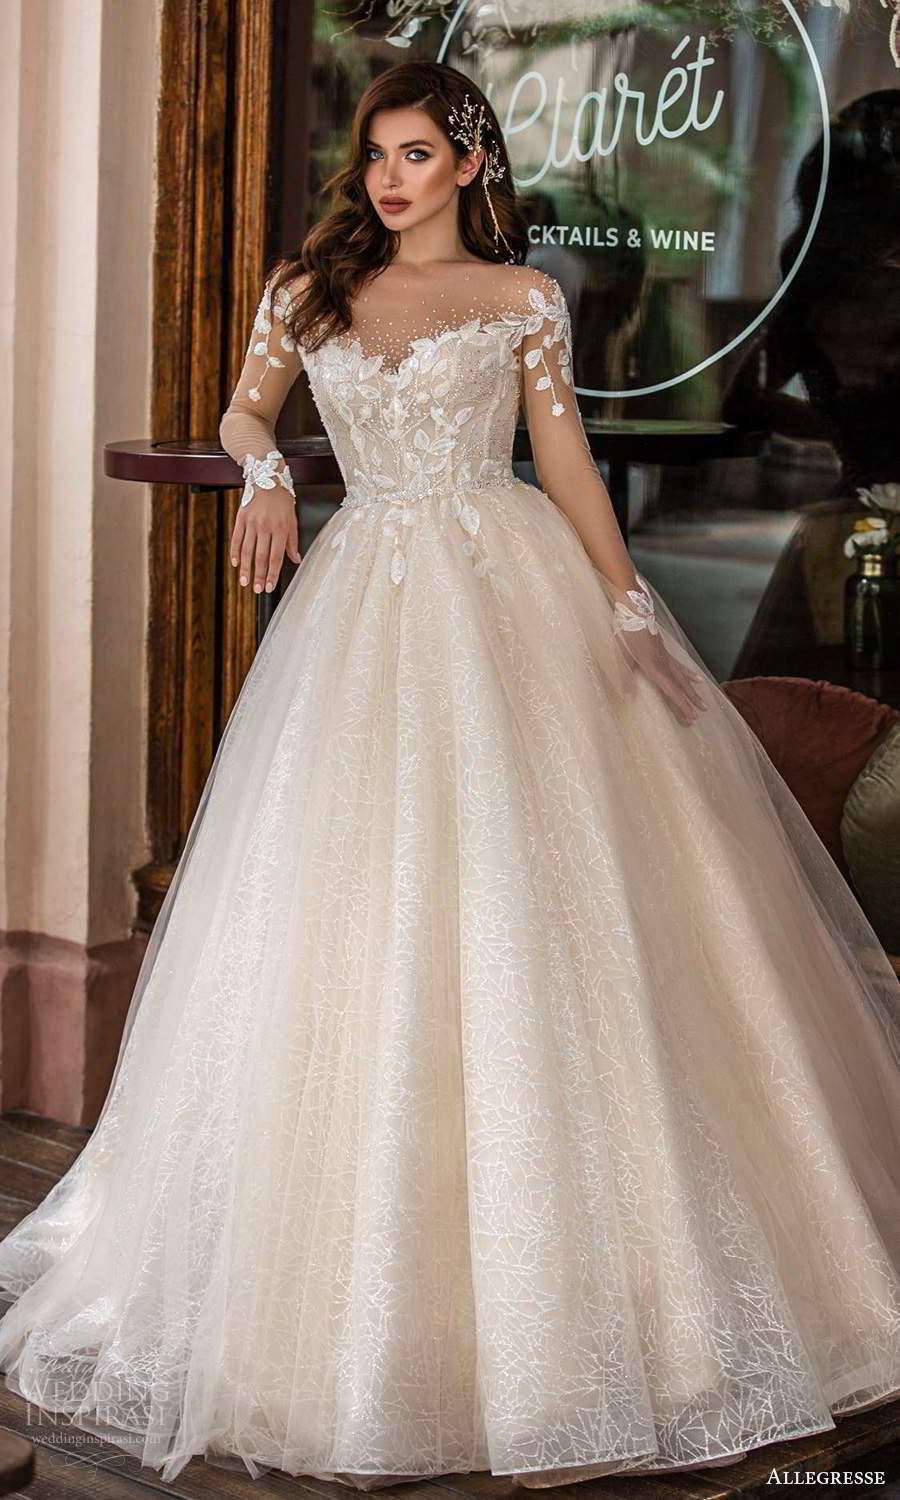 allegresse 2021 bridal illusion long sleeves off shoulder sweetheart neckline embellished bodice a line ball gown wedding dress chapel train blush champagne (9) mv